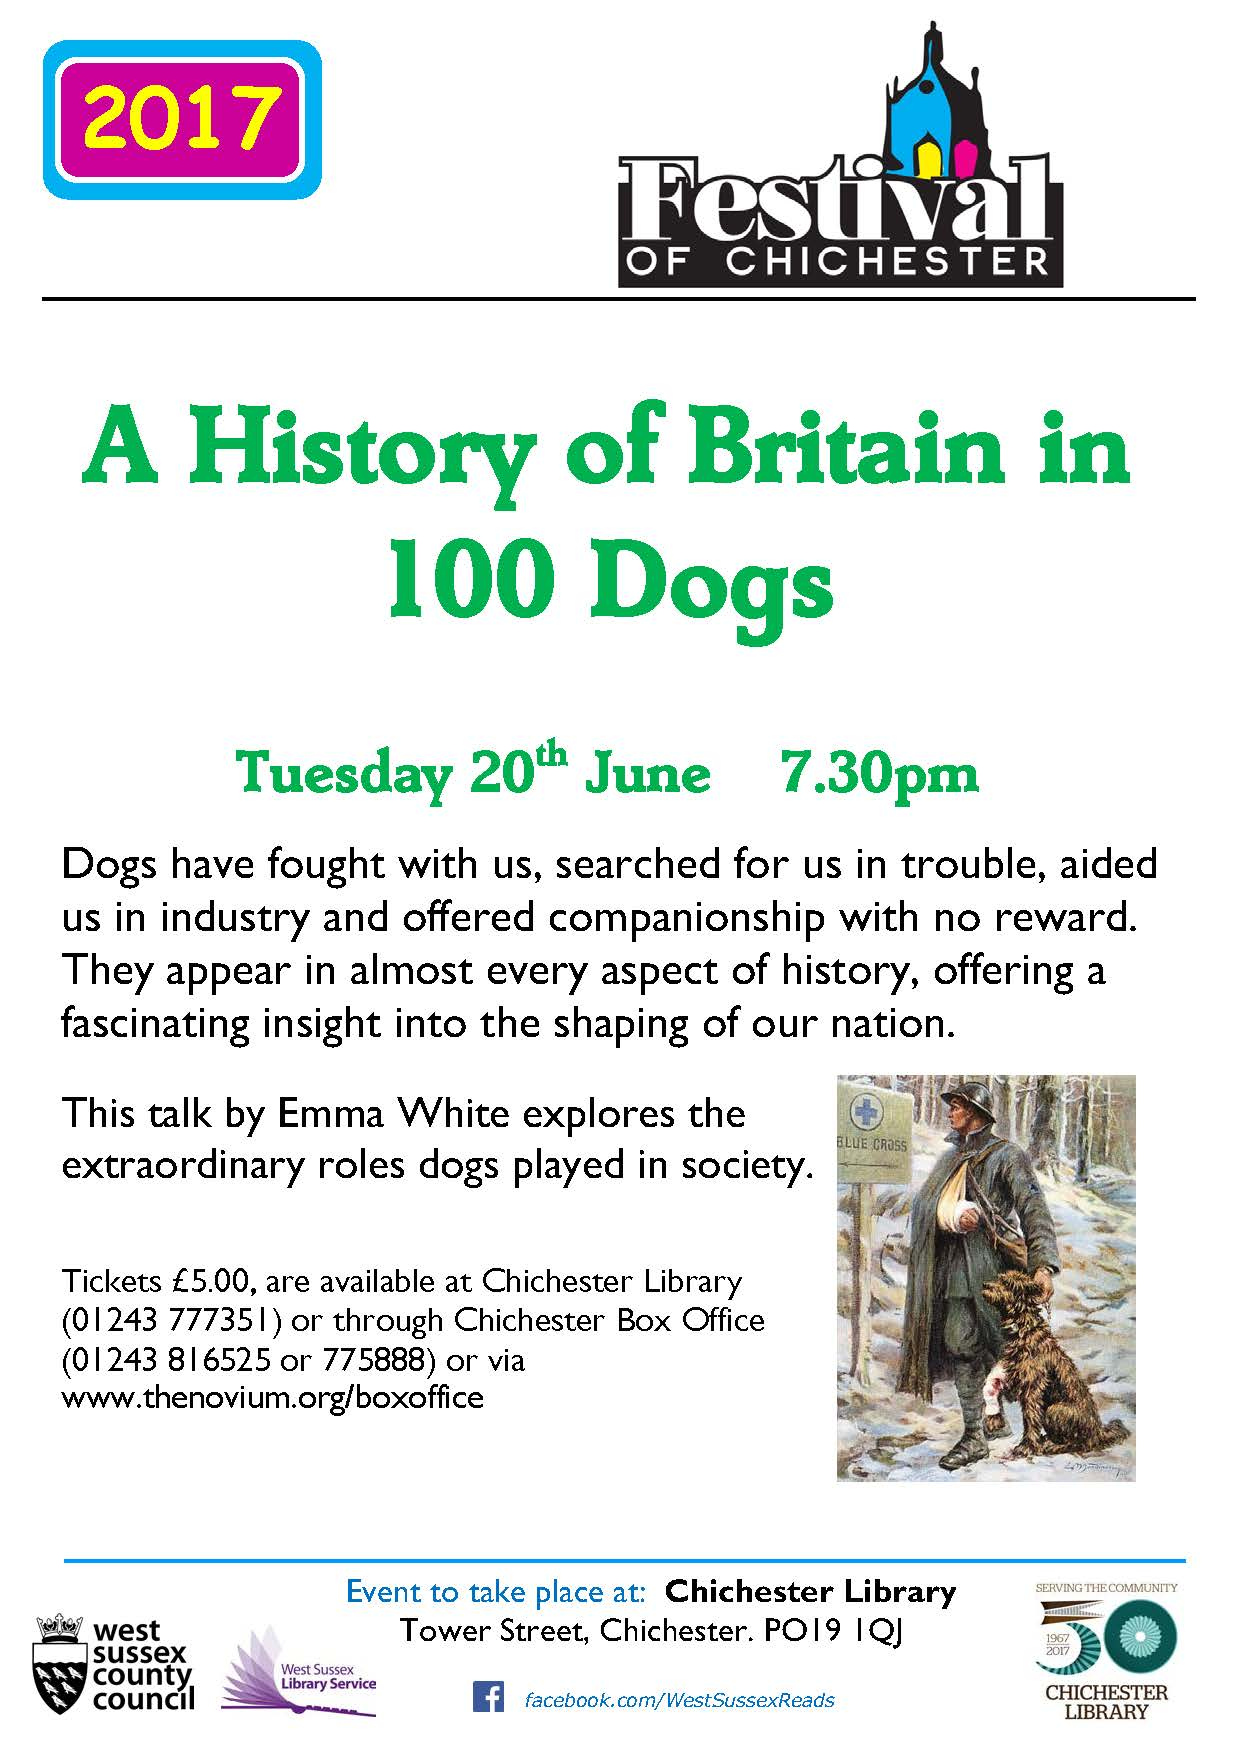 Adult - A history of Britain in 100 Dogs